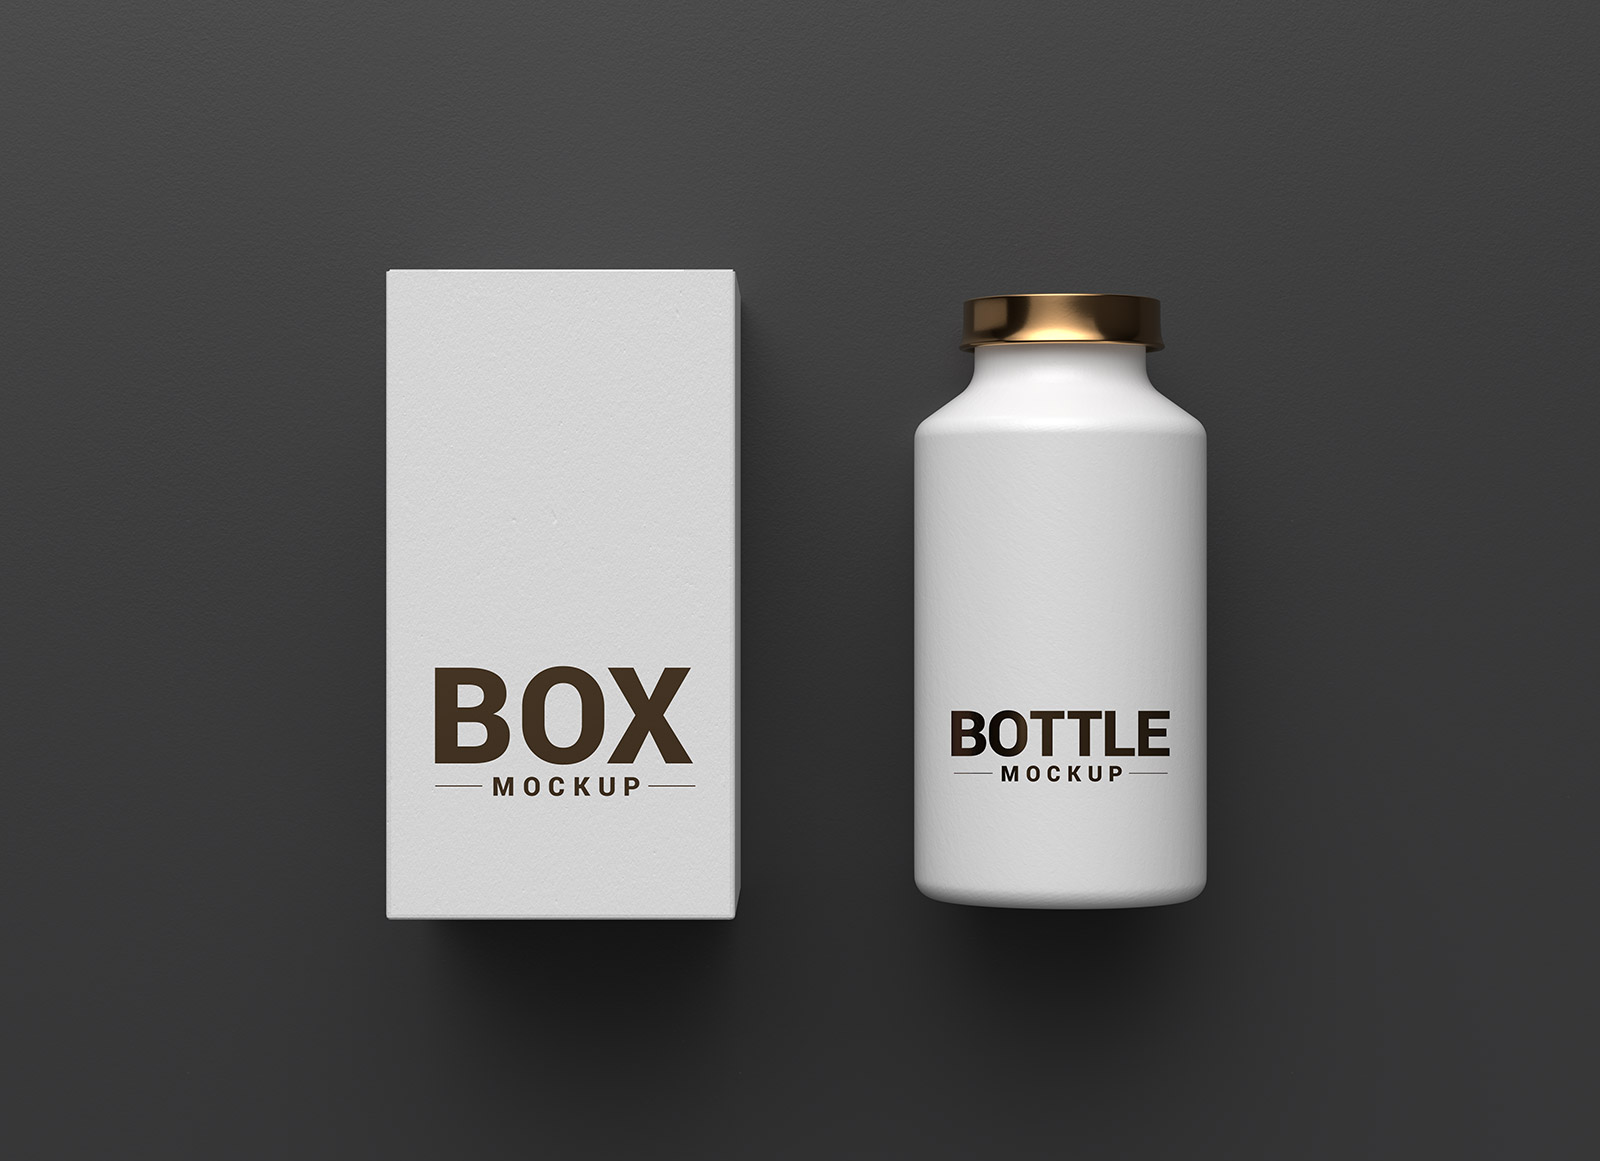 Free-Cosmetic-Bottle-&-Box-Packaging-Mockup-PSD